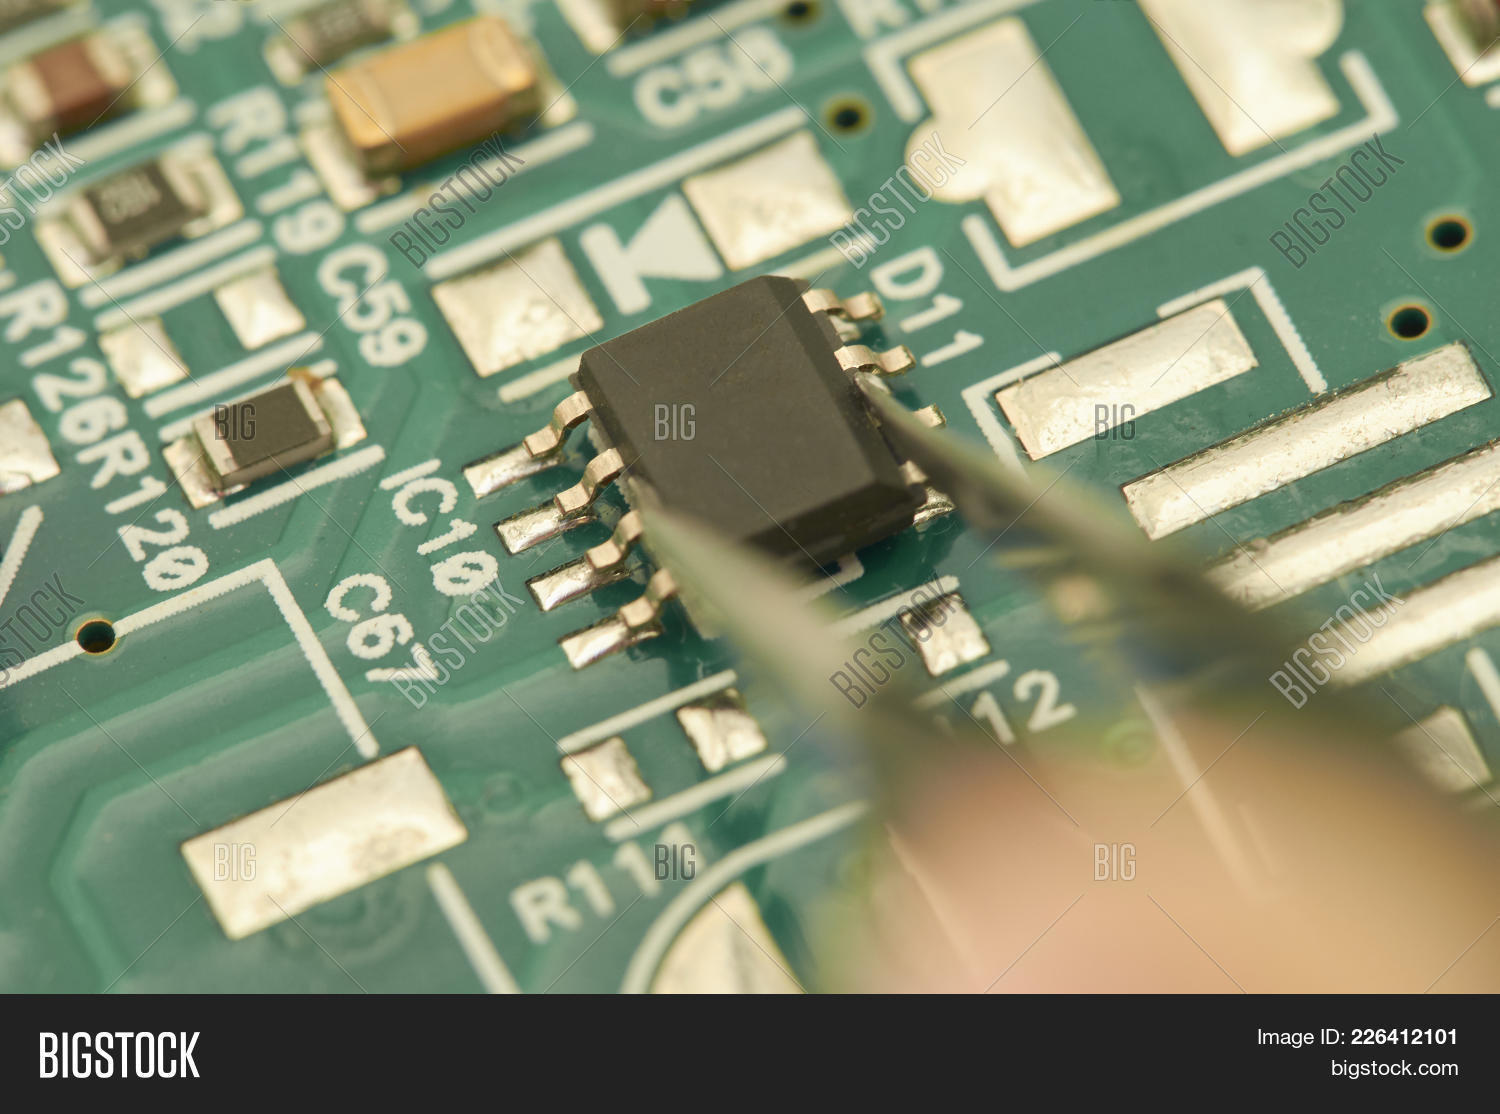 Electronic Circuit Image Photo Free Trial Bigstock Buy Pcb Printed Boardspcb Board With Processor Microchips And Glowing